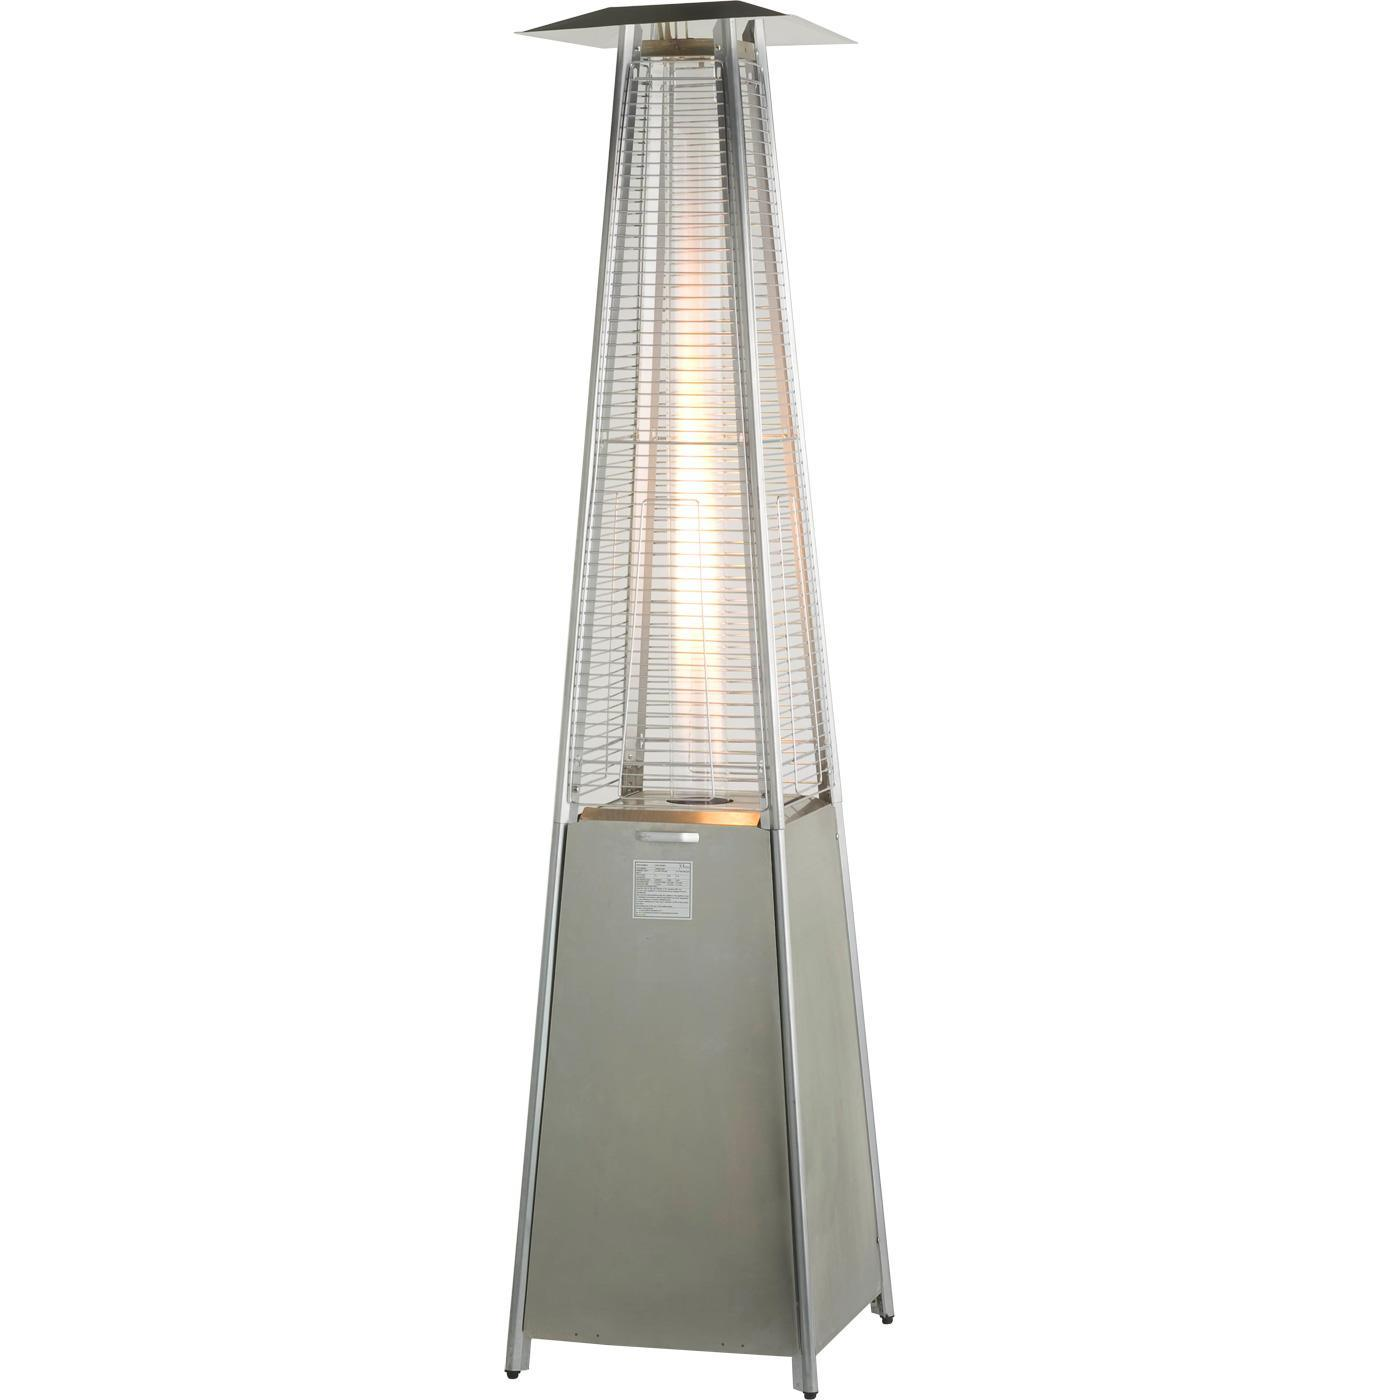 Pyramid Tower Outdoor Gas Patio Heater